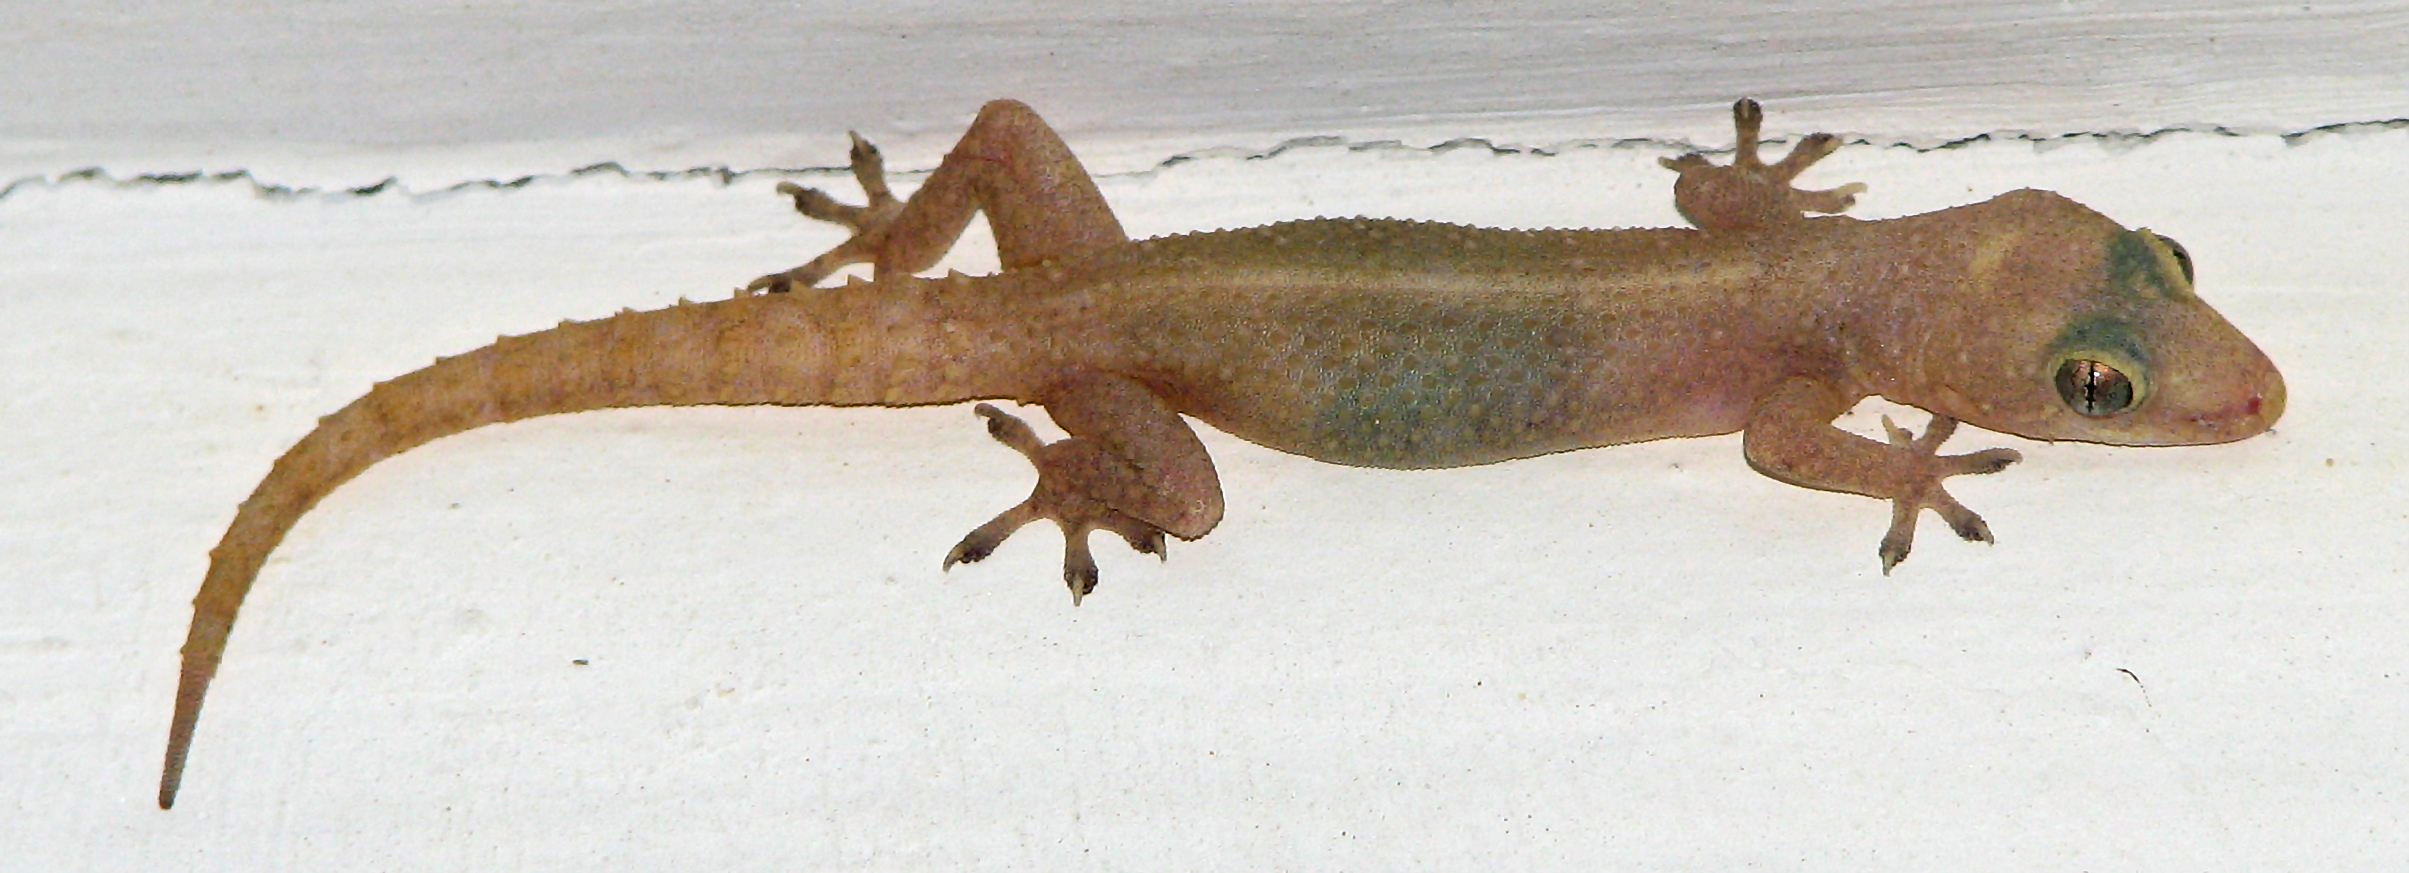 http://upload.wikimedia.org/wikipedia/commons/c/c0/Common_house_gecko.jpg